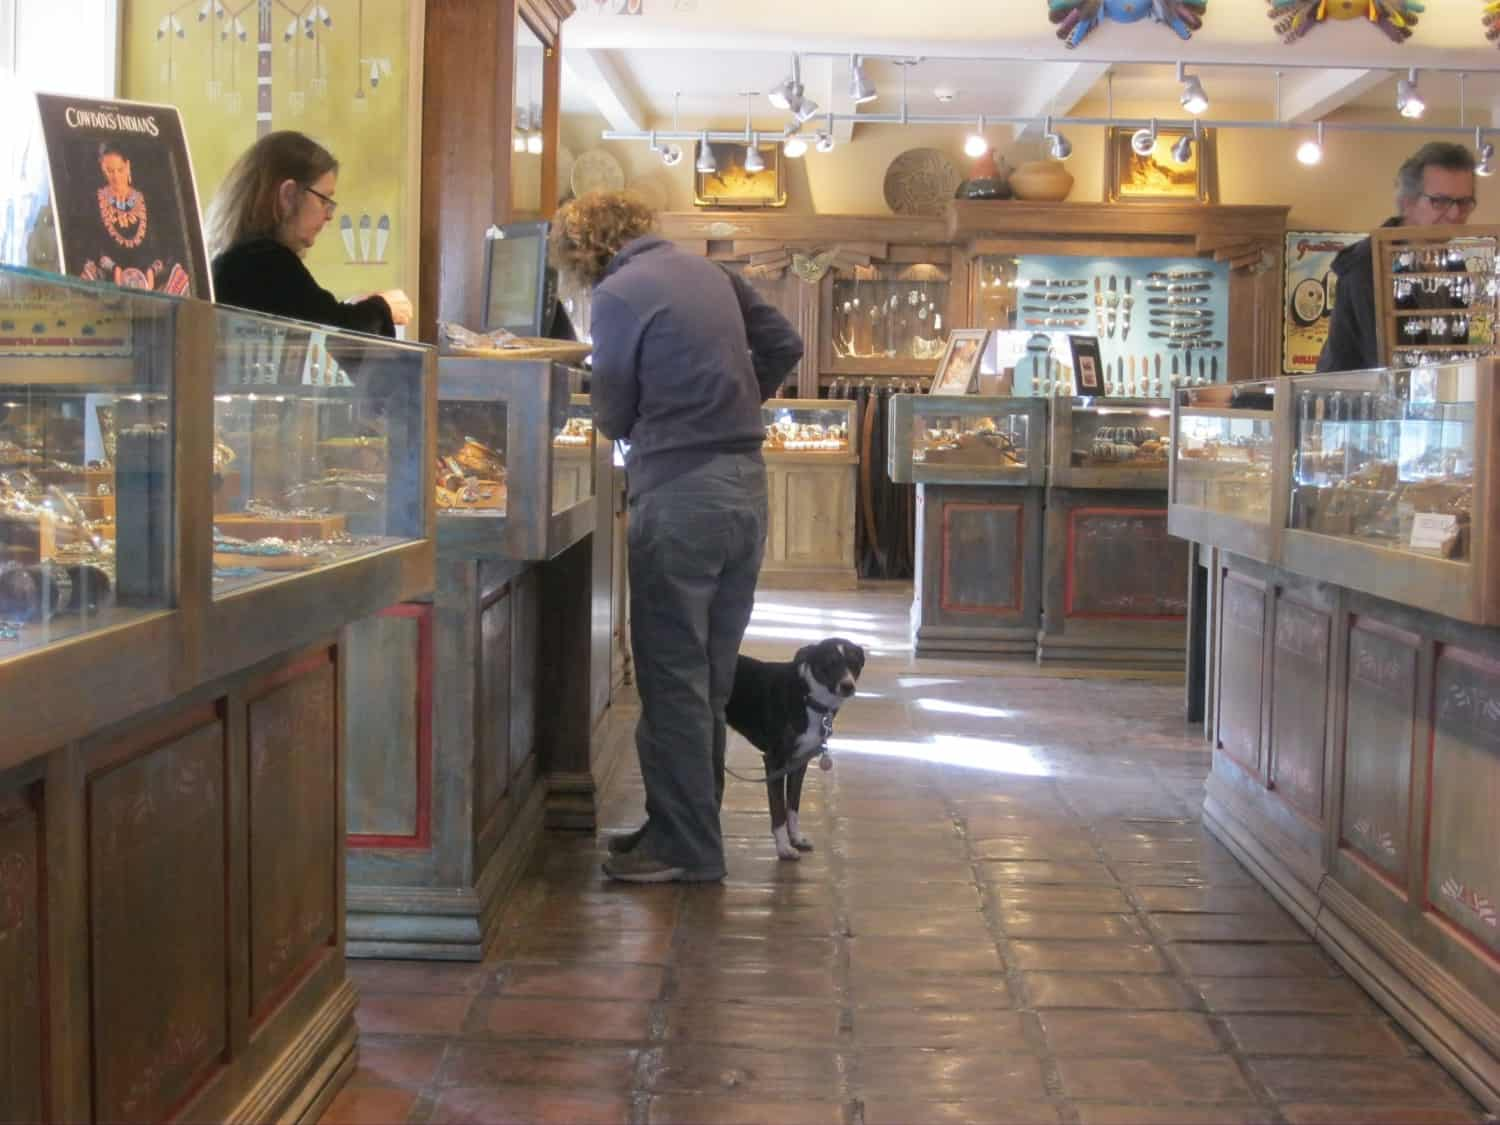 Dog and person shopping in Santa Fe, NM